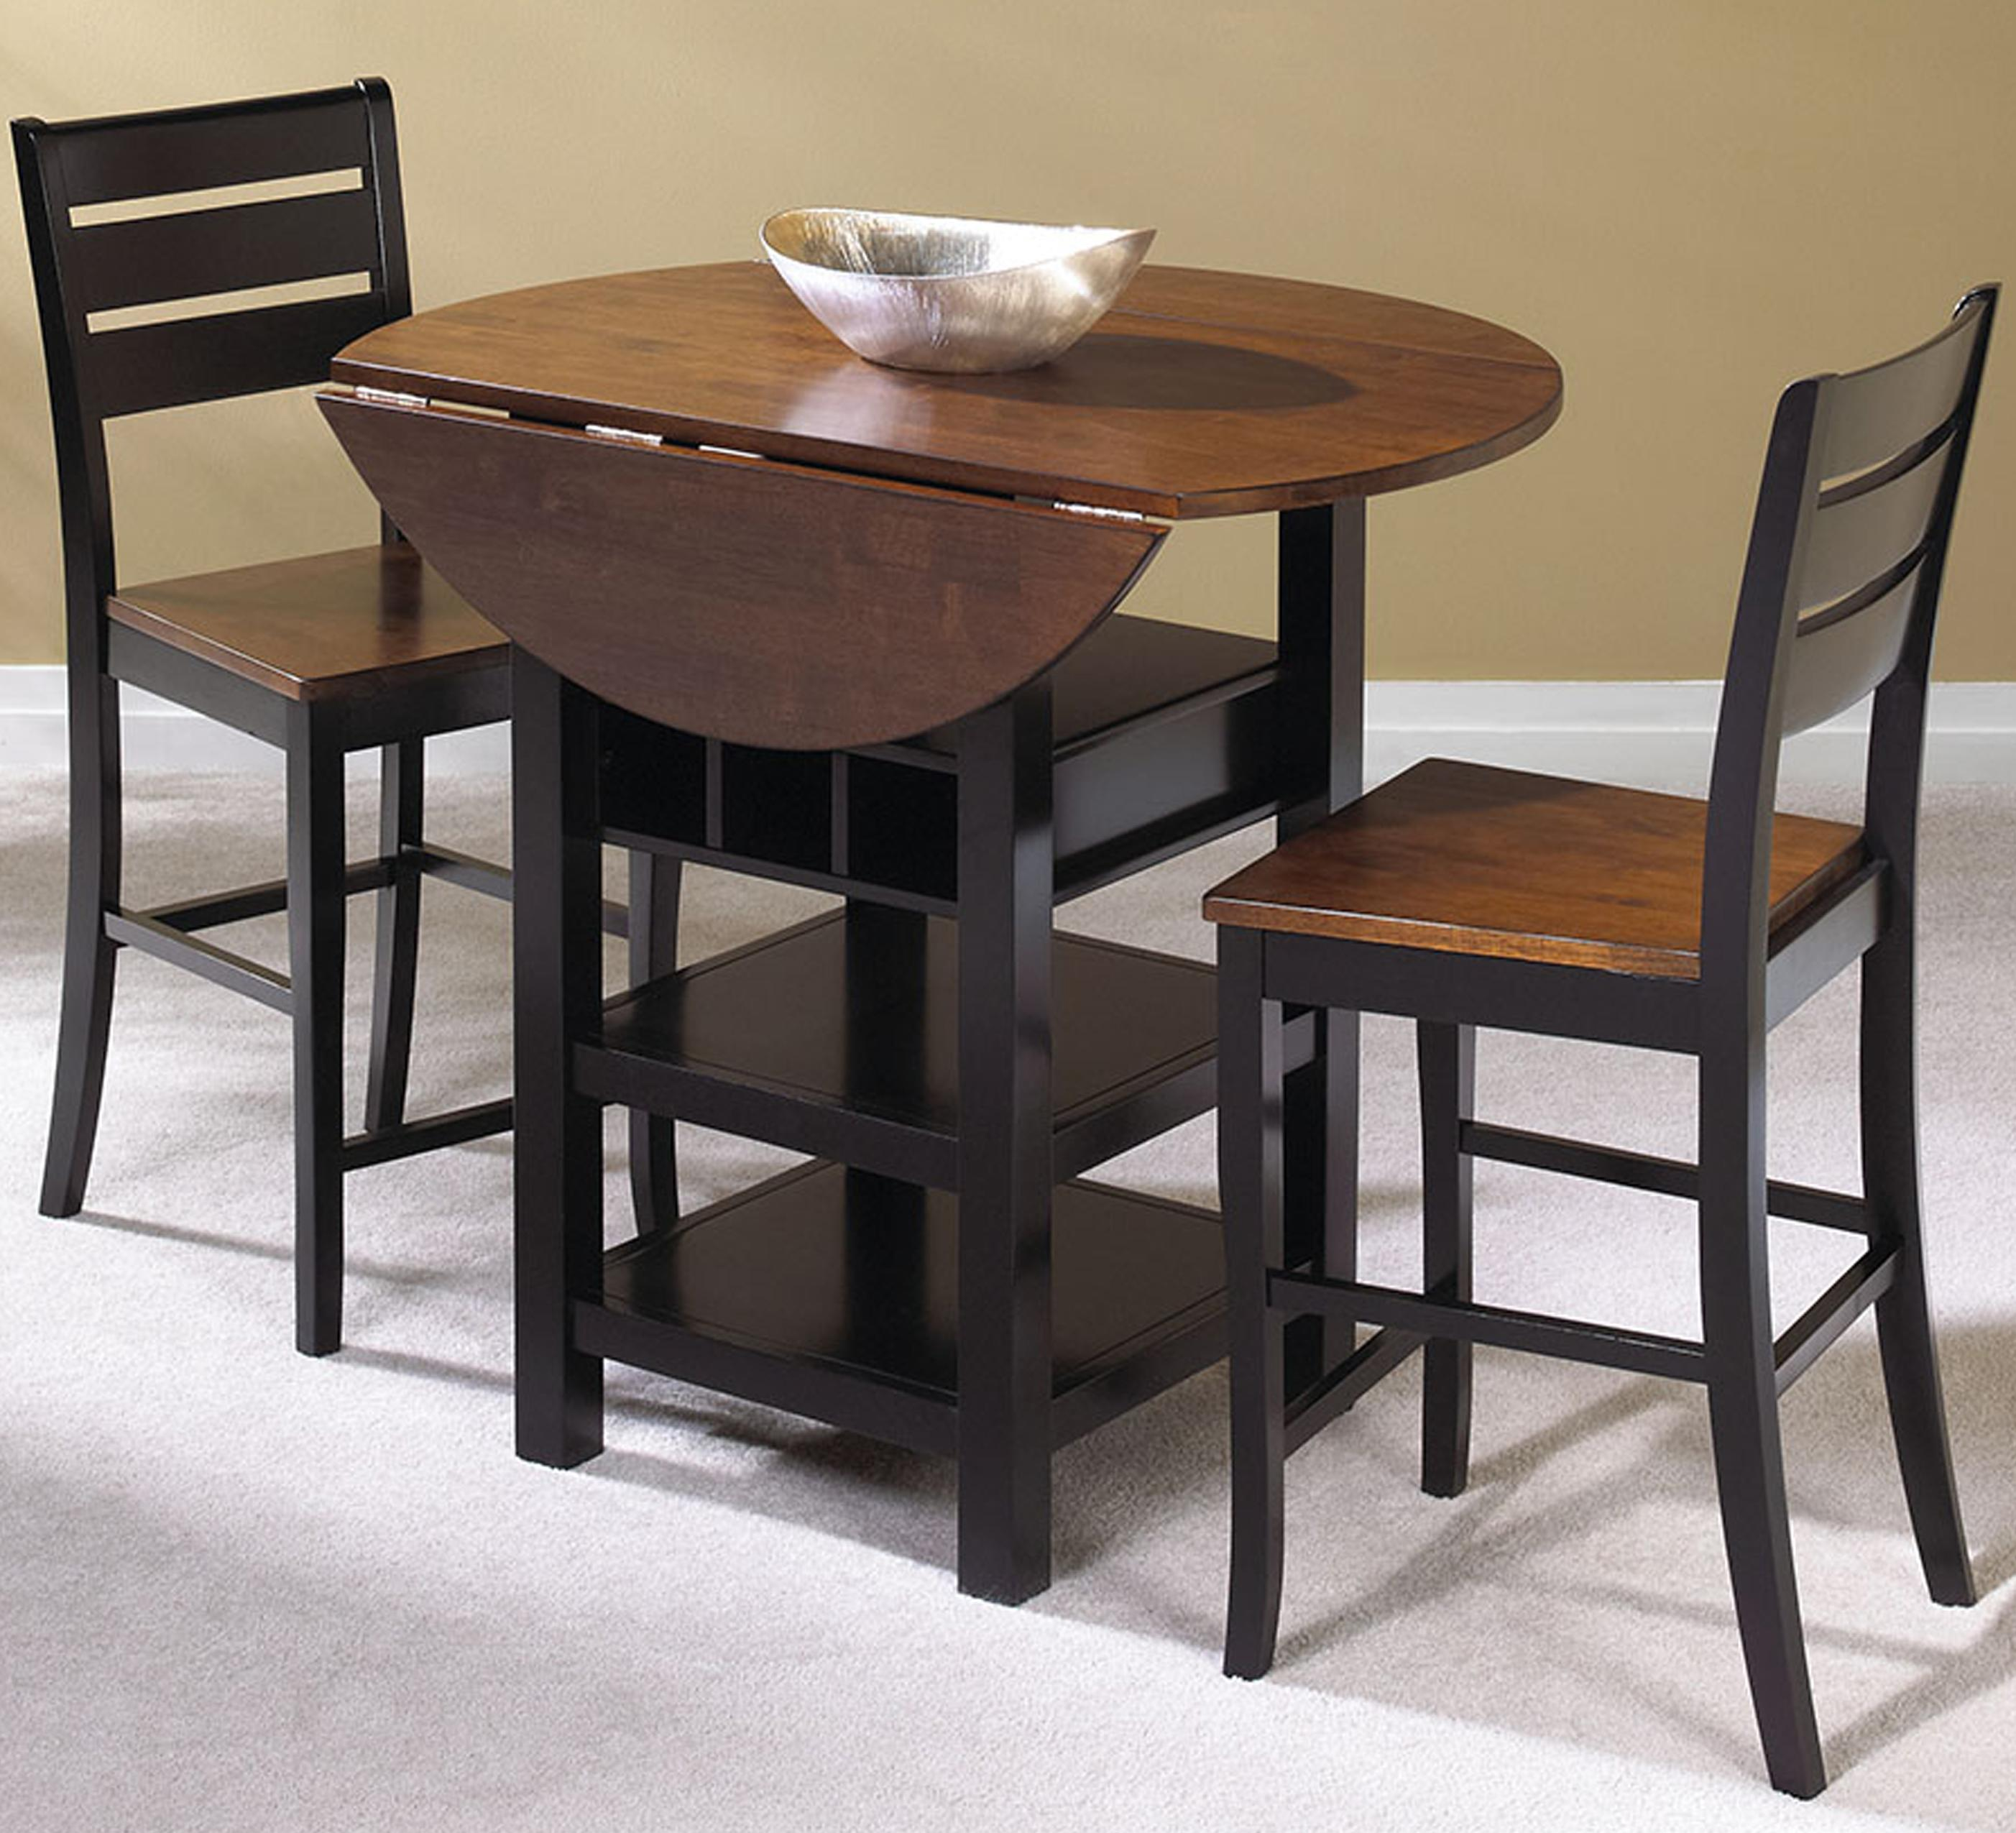 pub table and chairs 3 piece set 2 little tikes with drawers cramco inc quincy johnny janosik